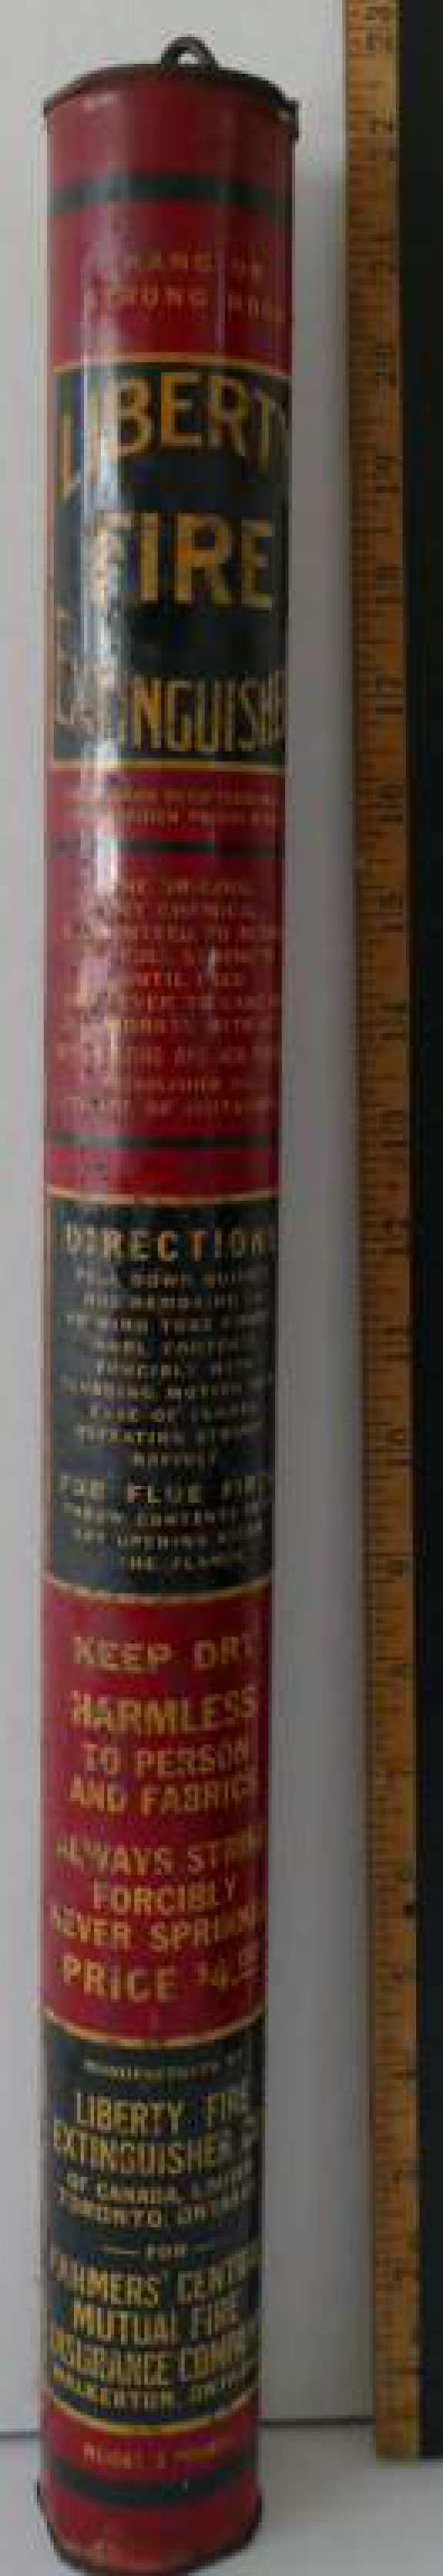 Liberty Fire Extinguisher